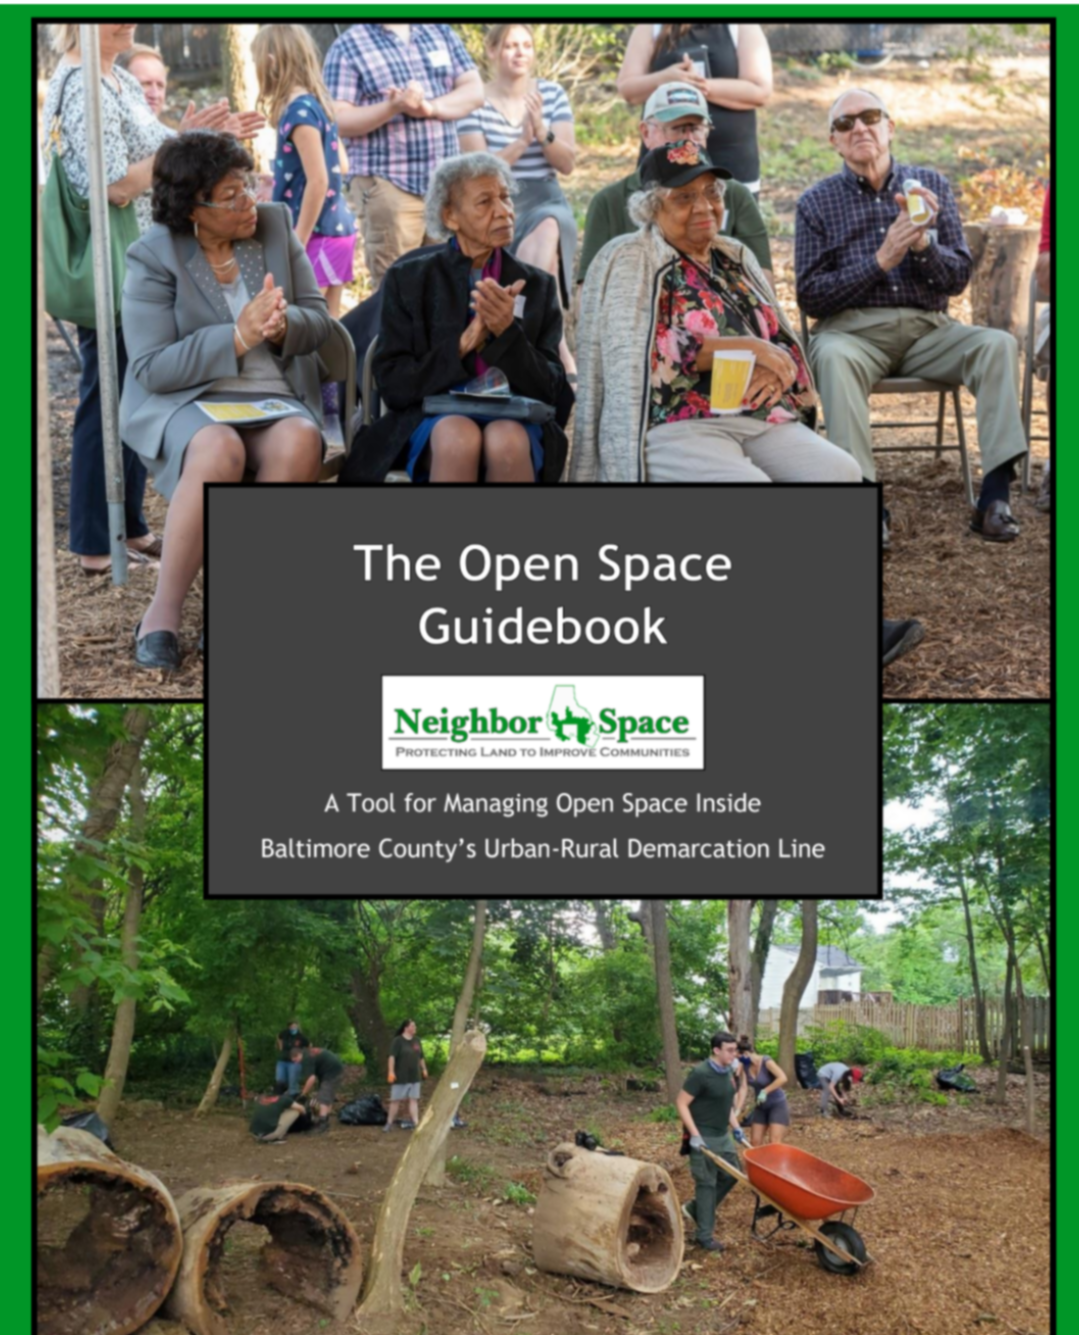 Image of the Guidebook's cover by Neighbor Space